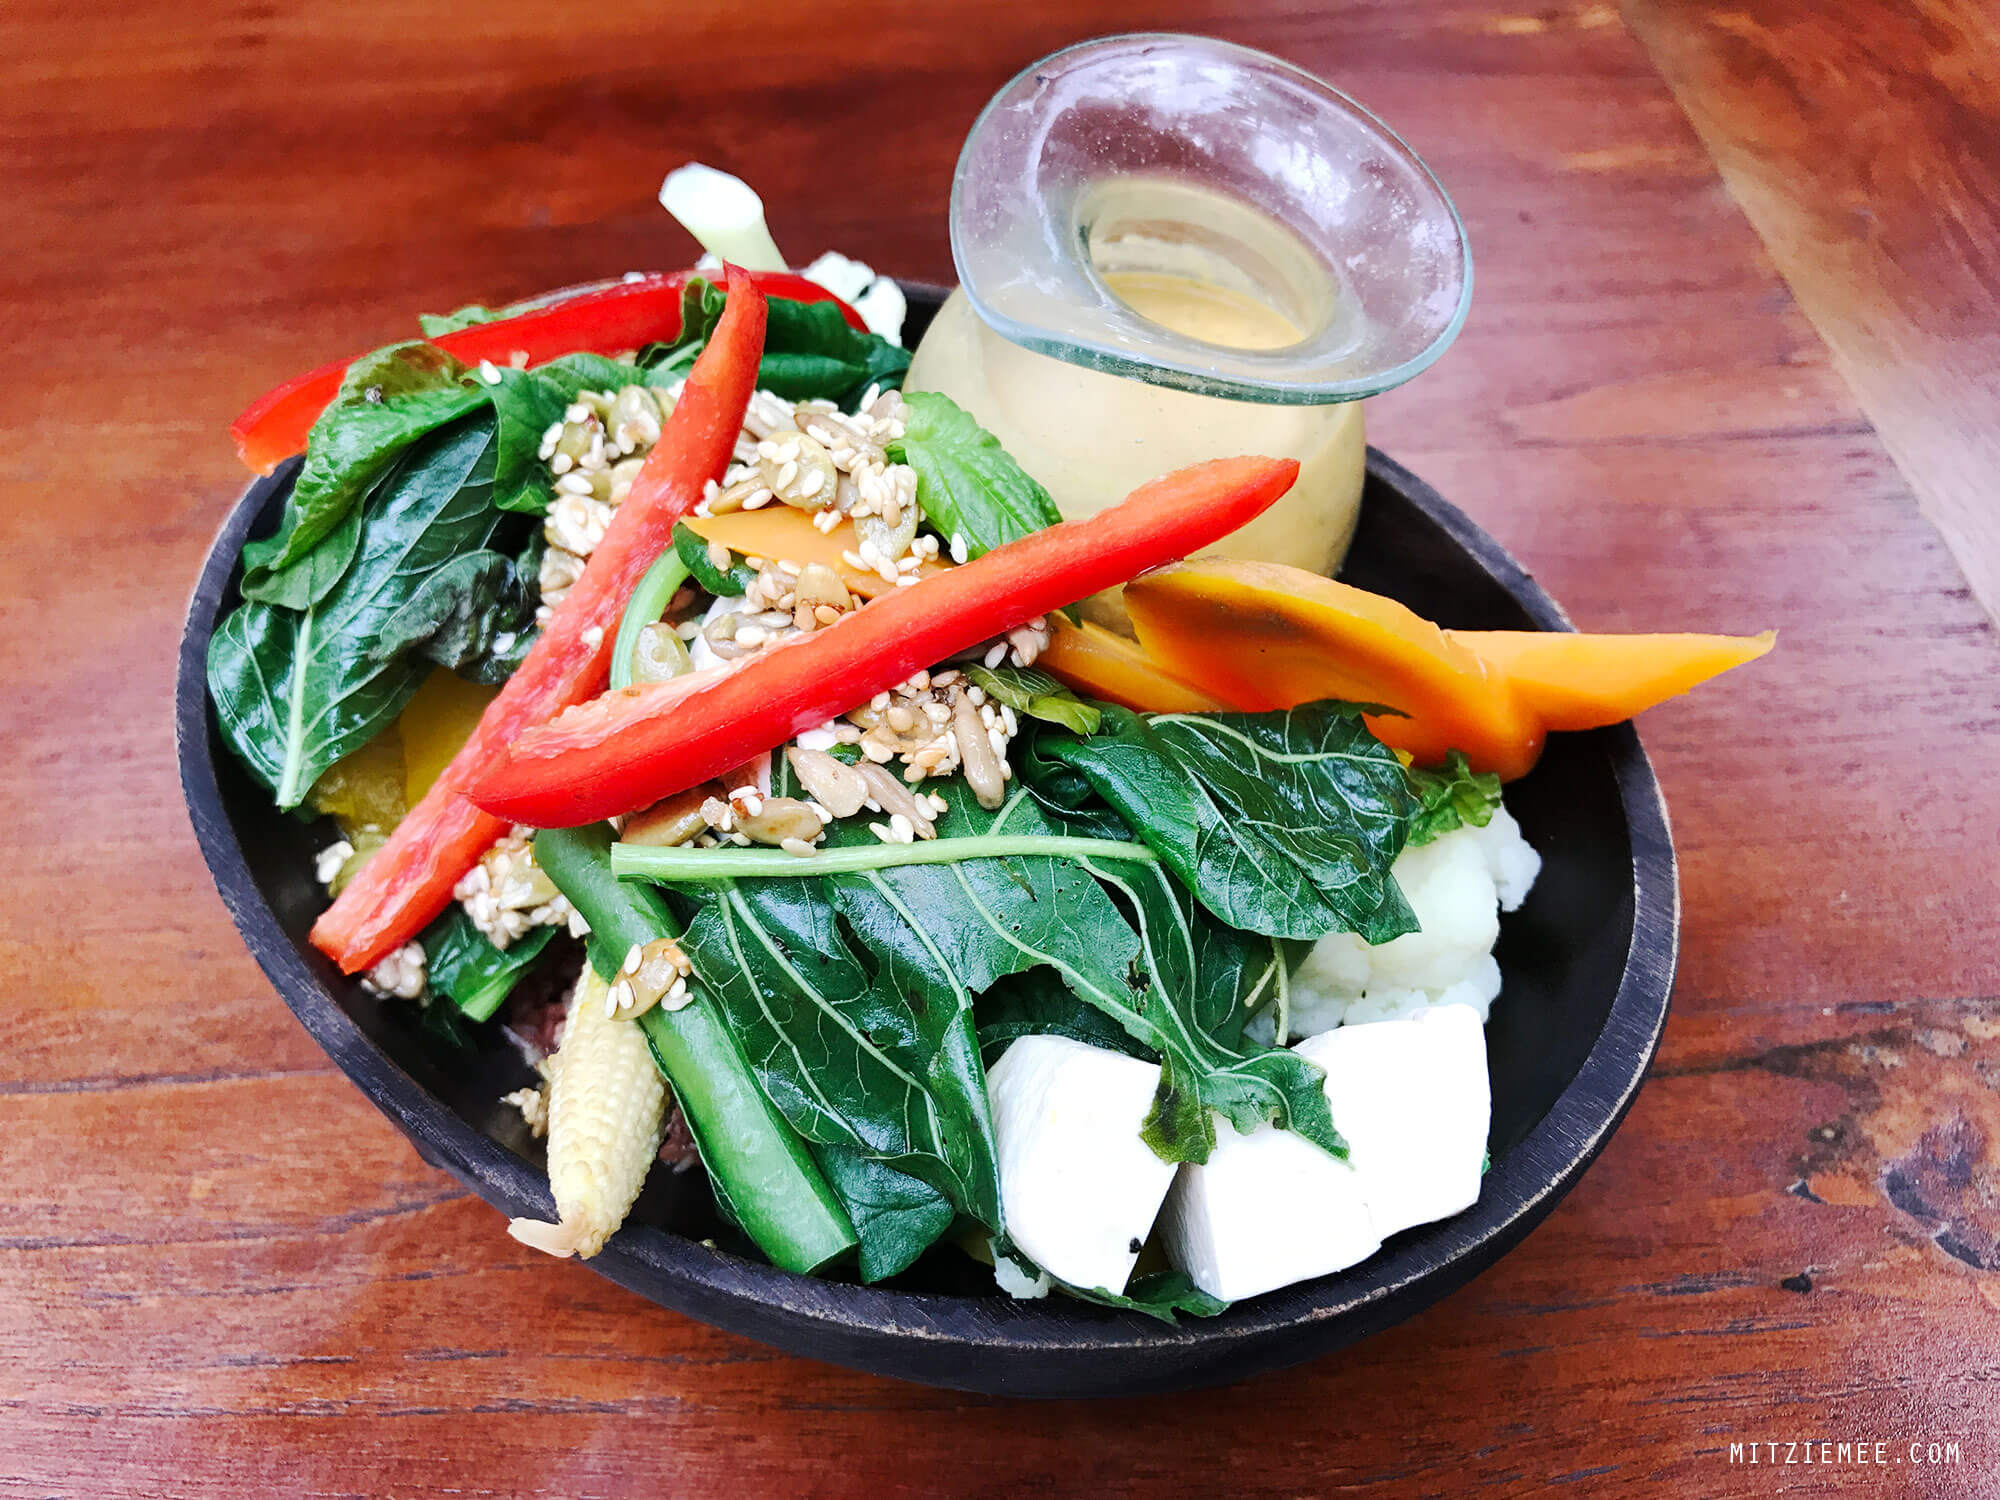 Macrobiotic bowl at Yoga Barn in Ubud, Bali